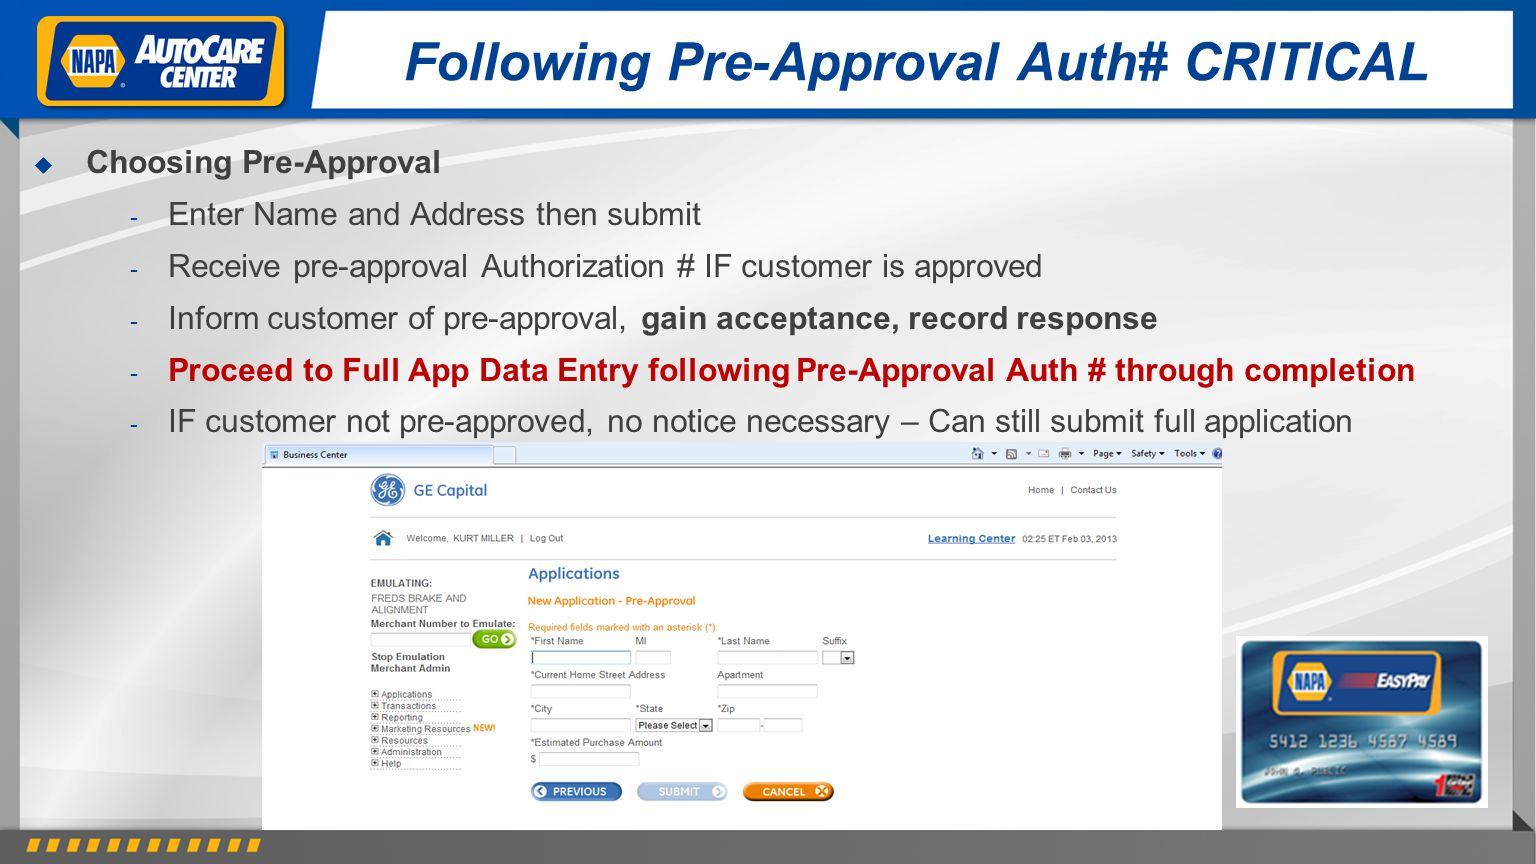 Following Pre-Approval Auth# CRITICAL